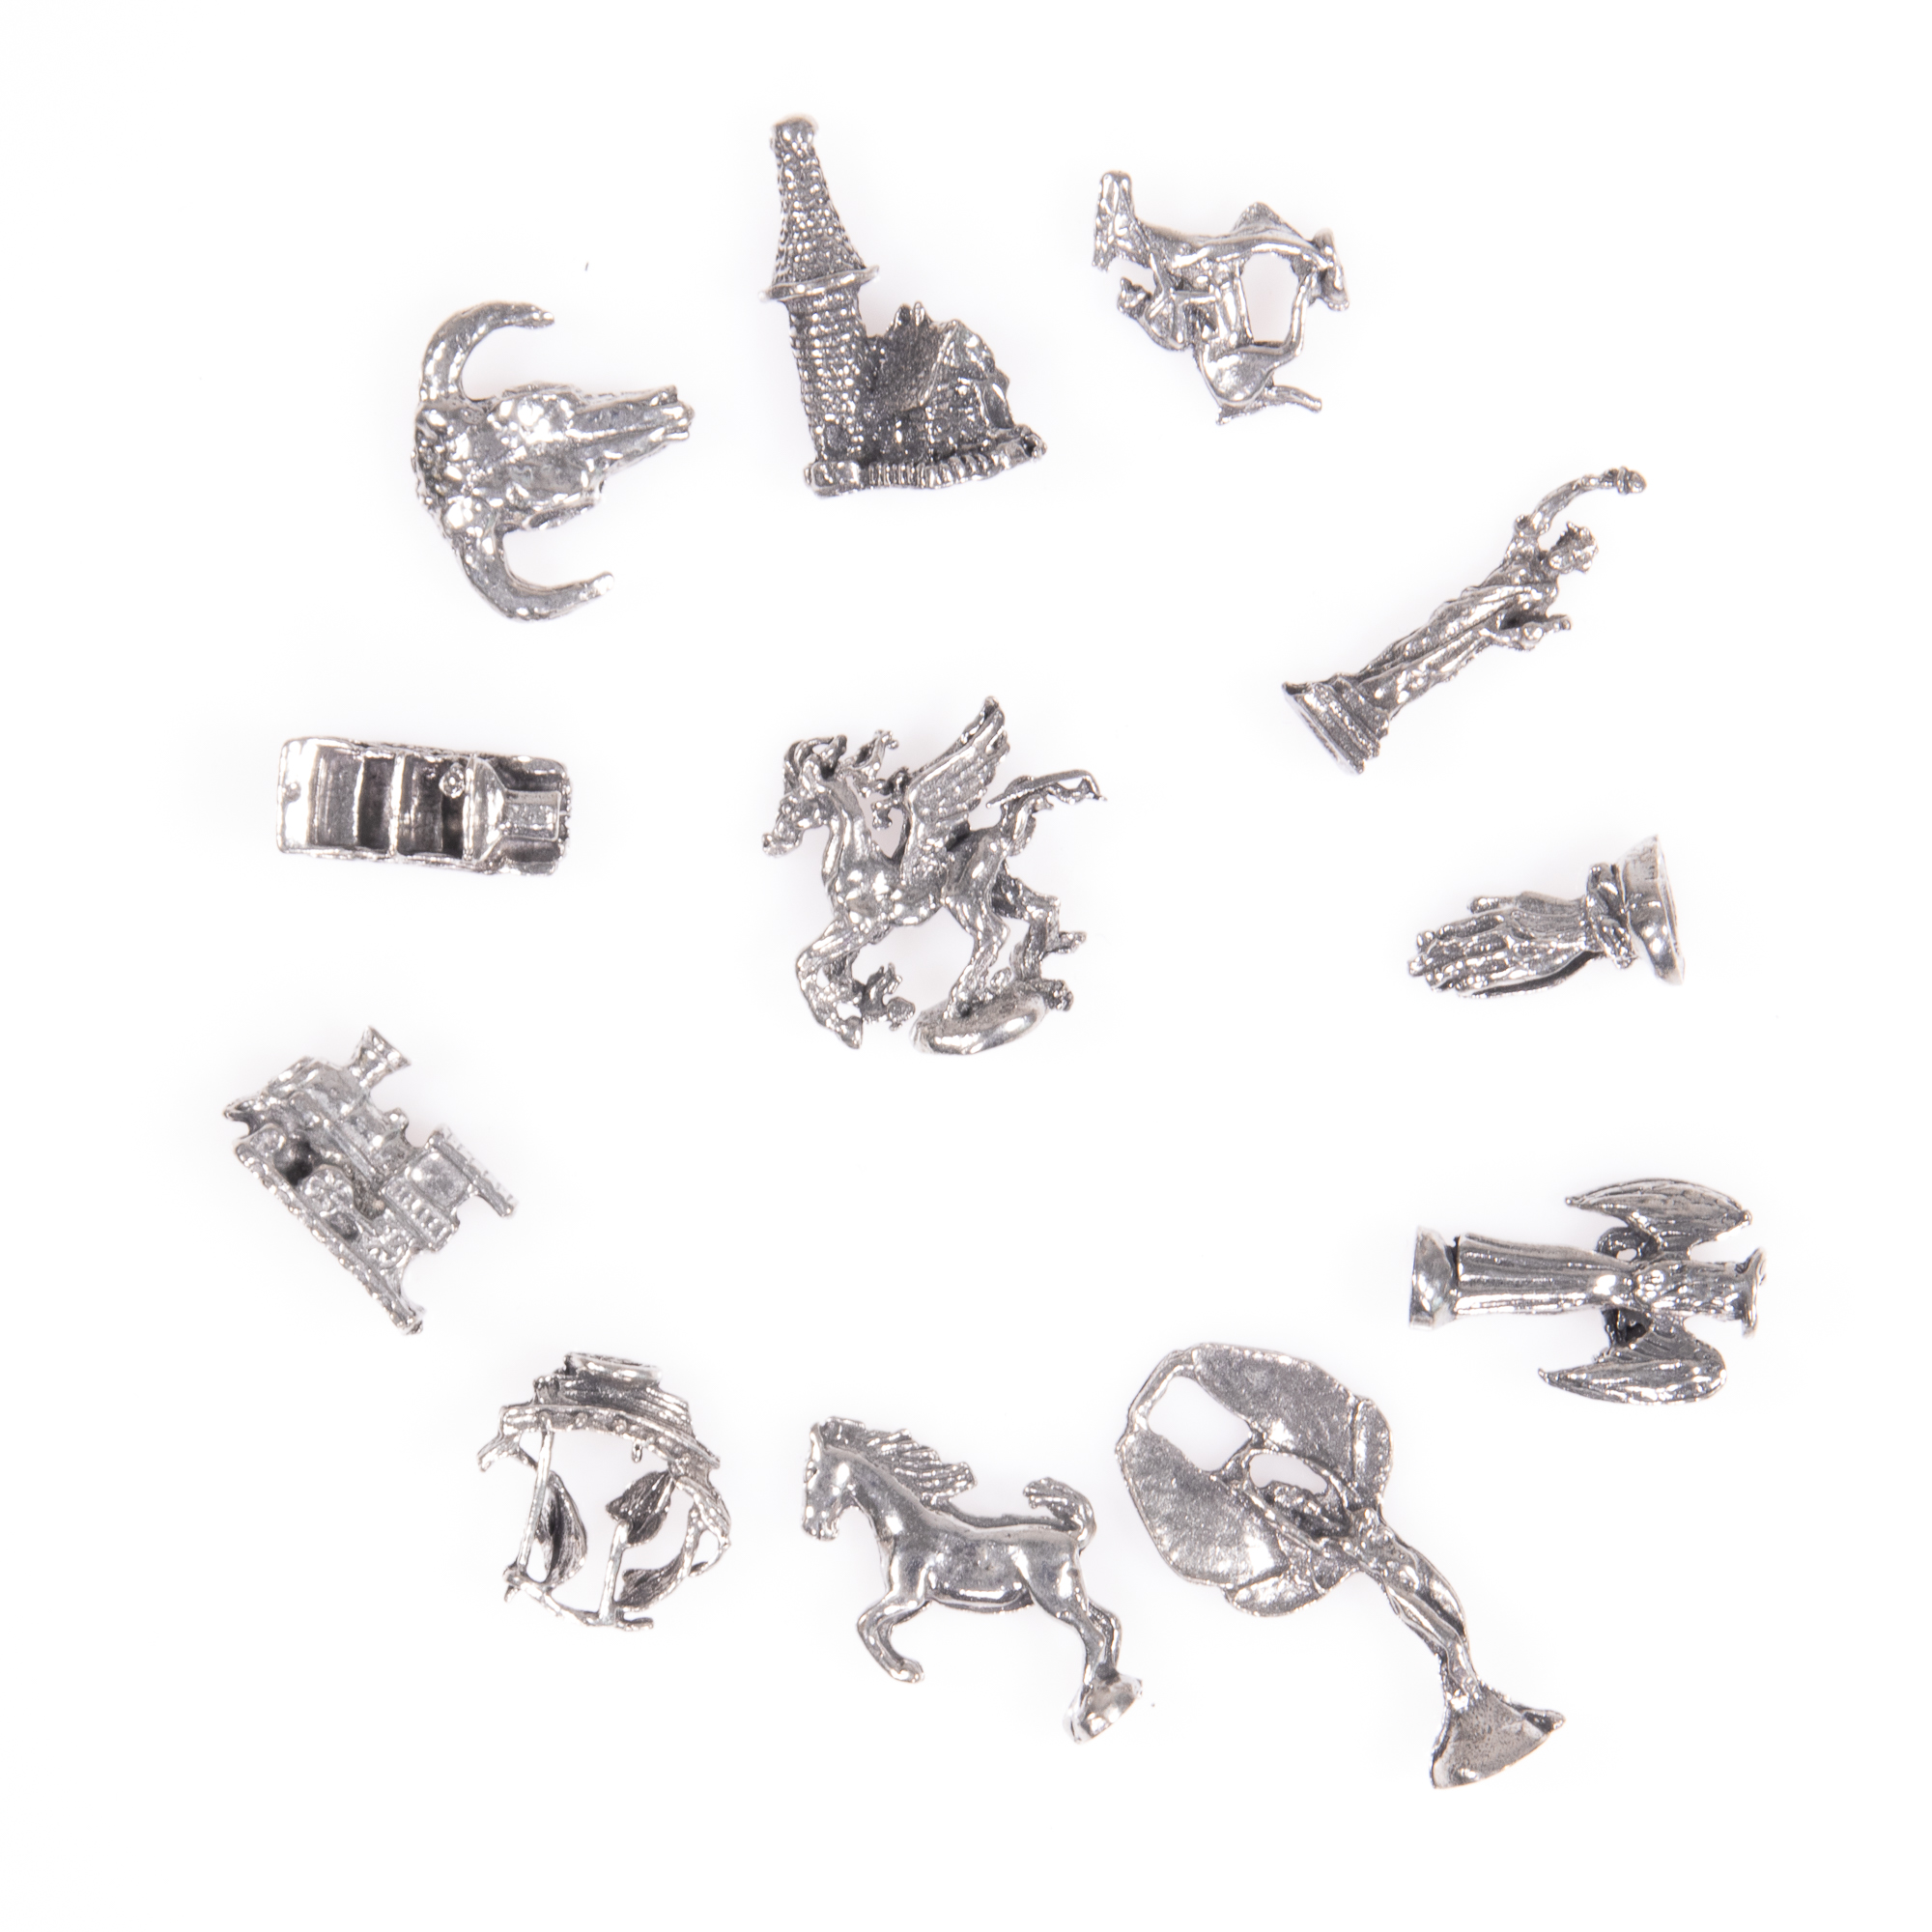 Selection of 12x Silver Novelty Charms - Image 6 of 6